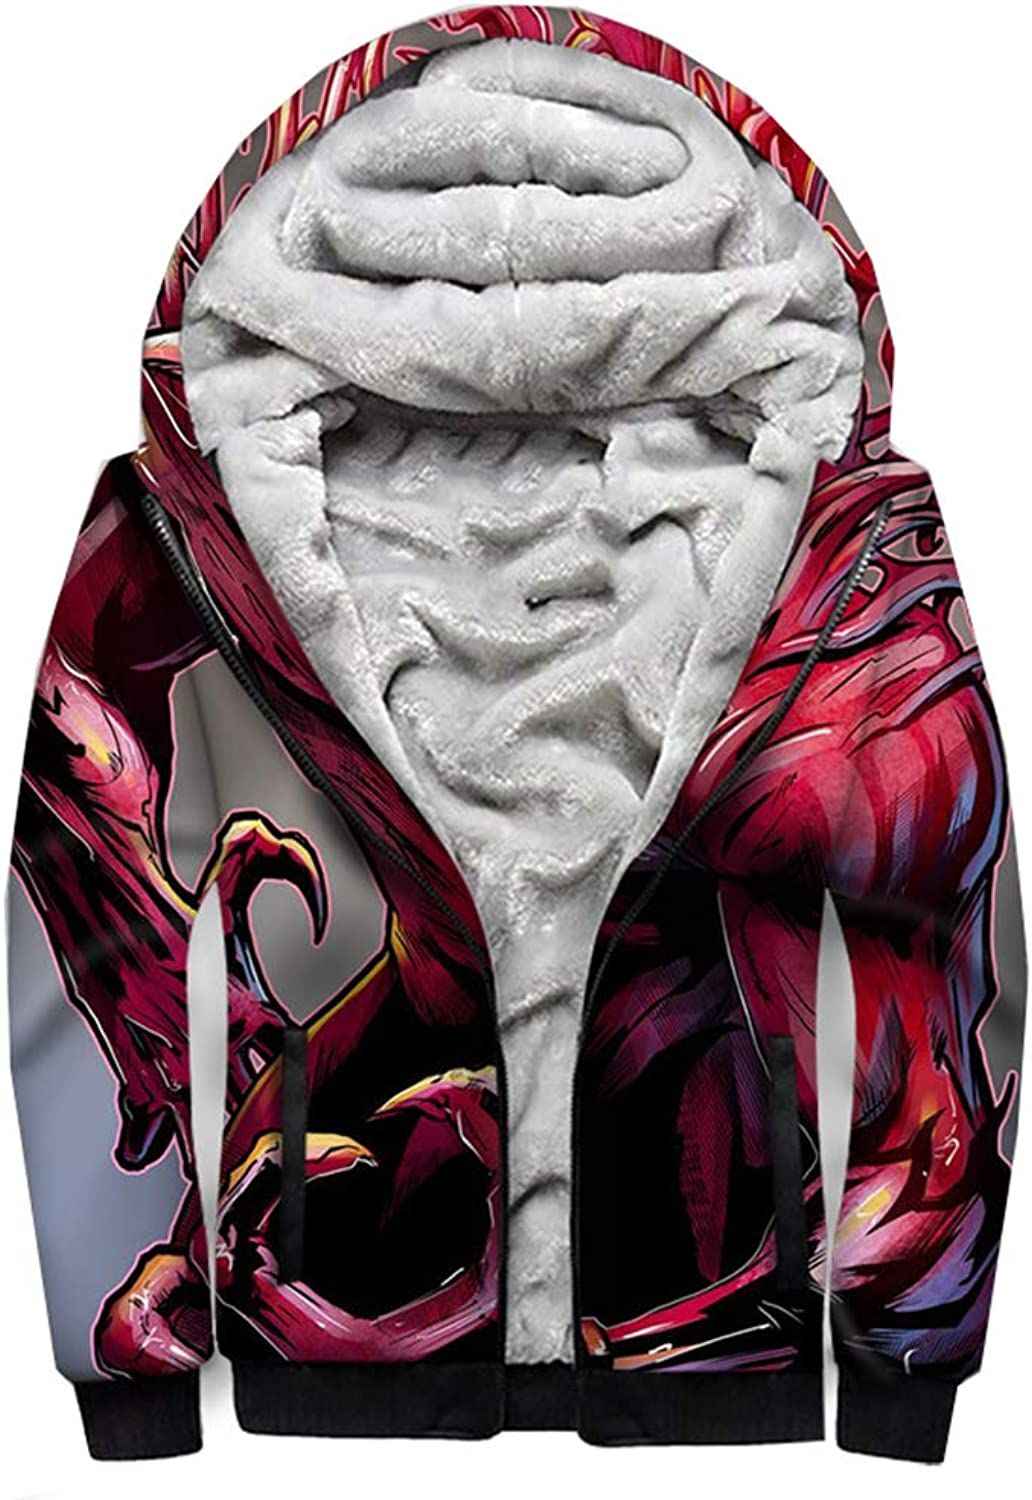 3D Hoodie Zipper Cardigan Hooded Sweater Super Hero Venom Flannel Thickening Sweatshirt Winter Warm